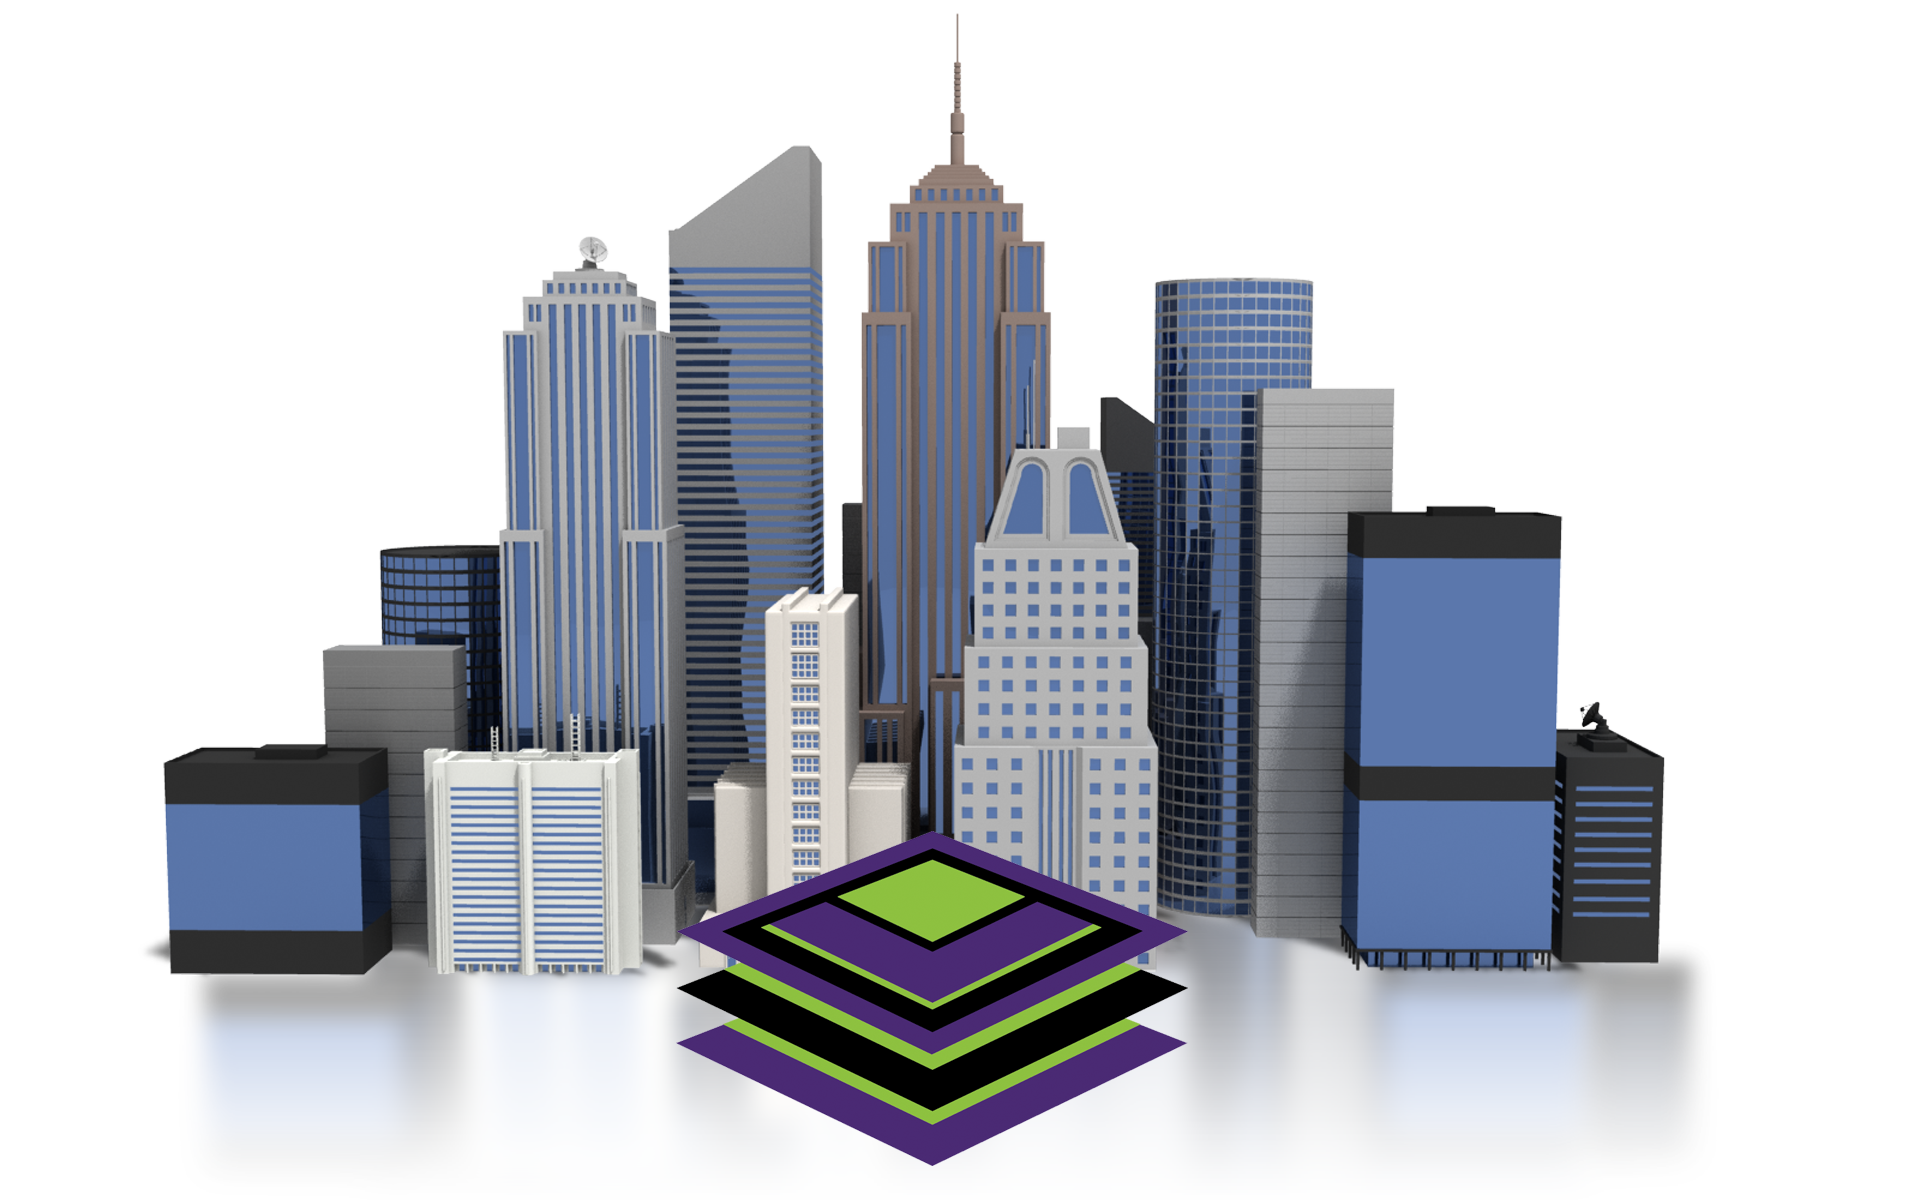 Monolith Modular Systems Inc. is located in New York City